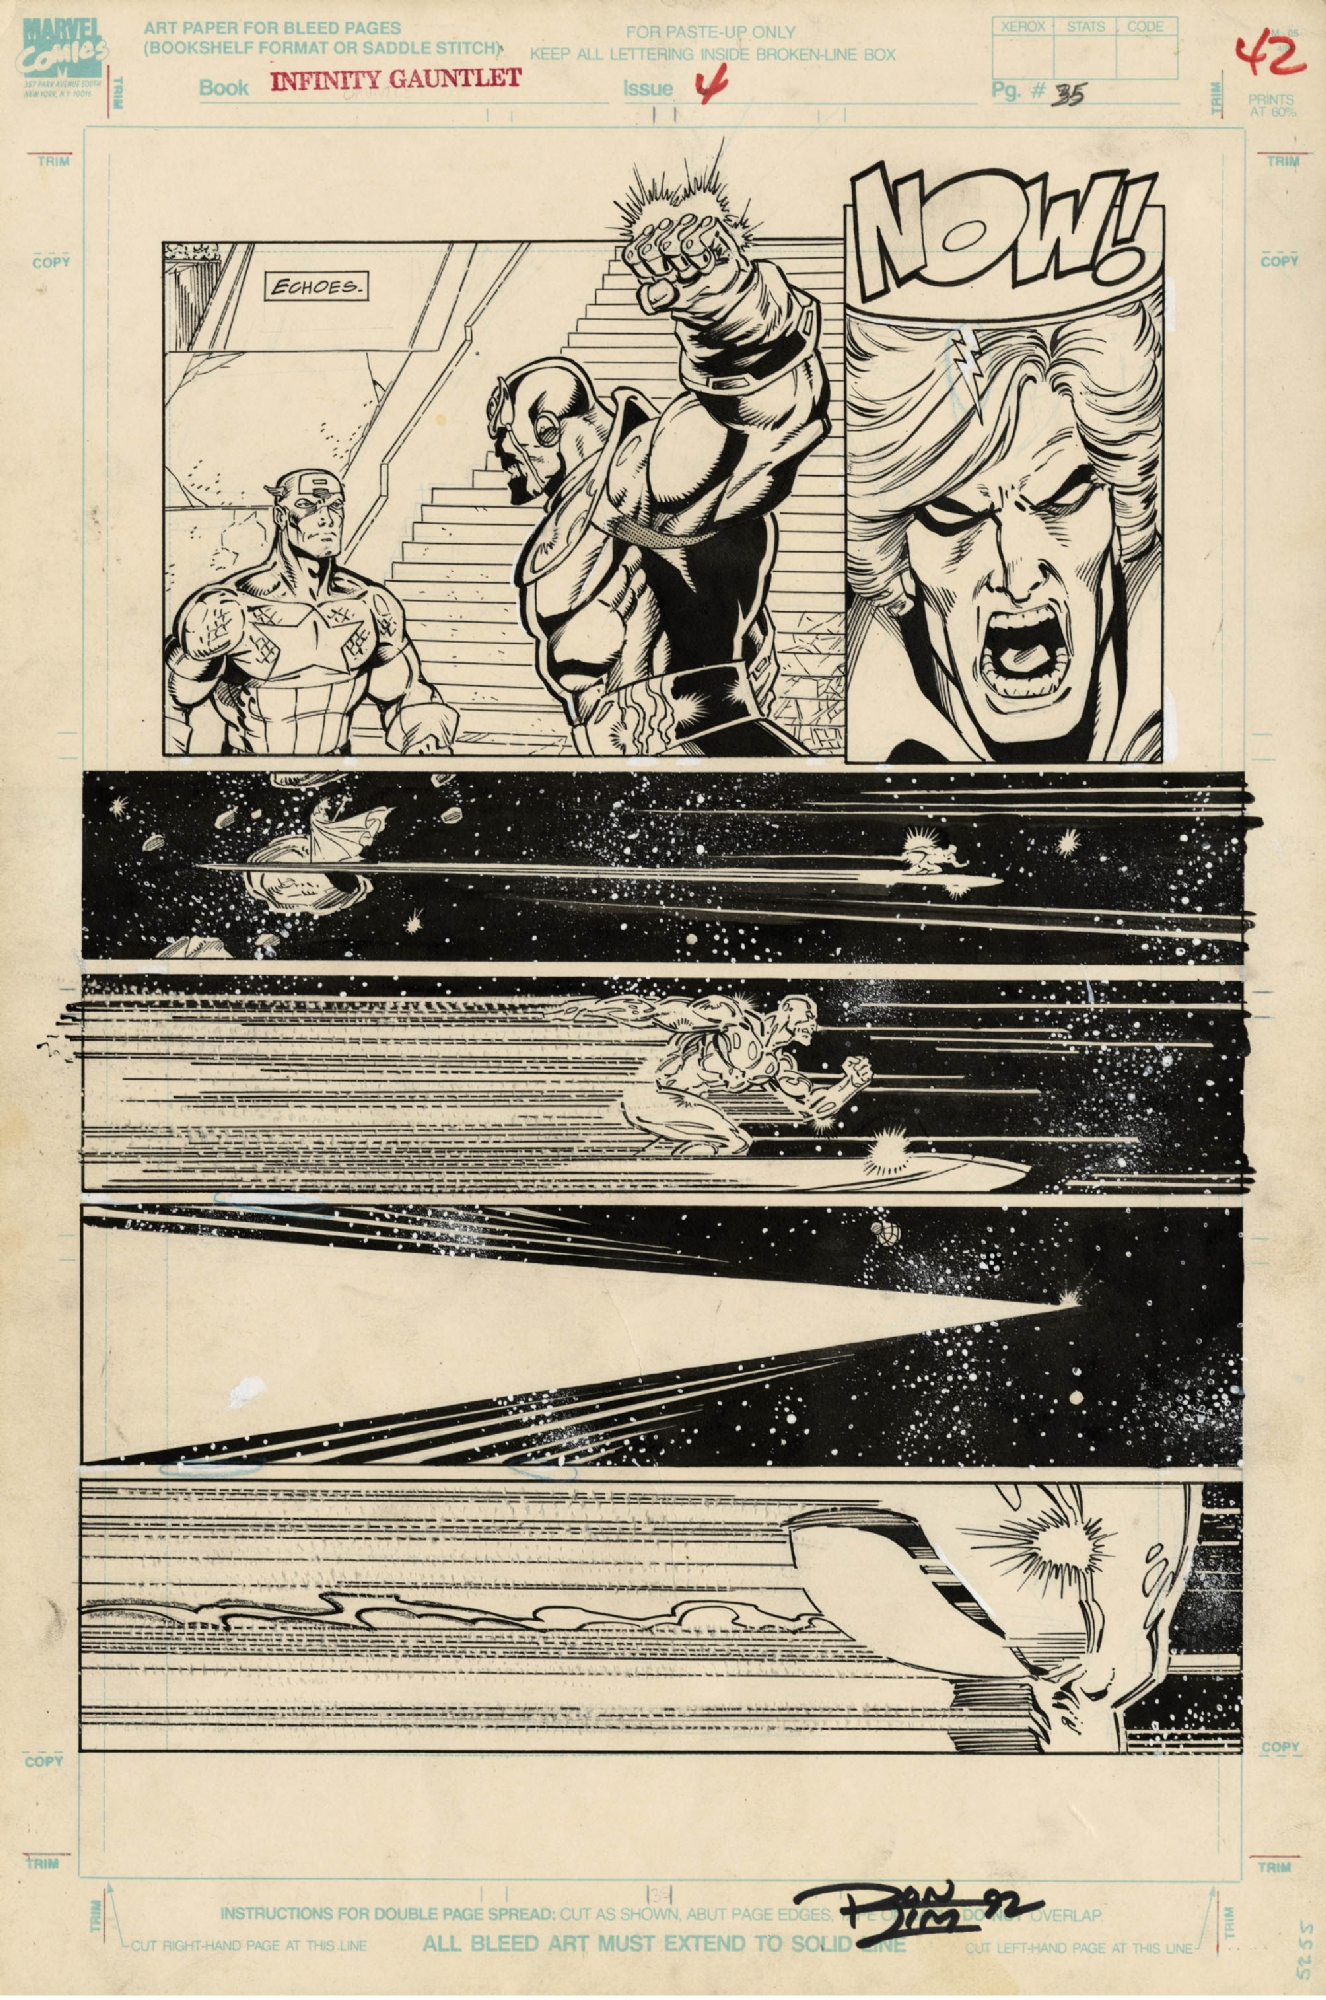 INFINITY GAUNTLET #4 PAGE ( 1991, RON LIM AND GEORGE PEREZ